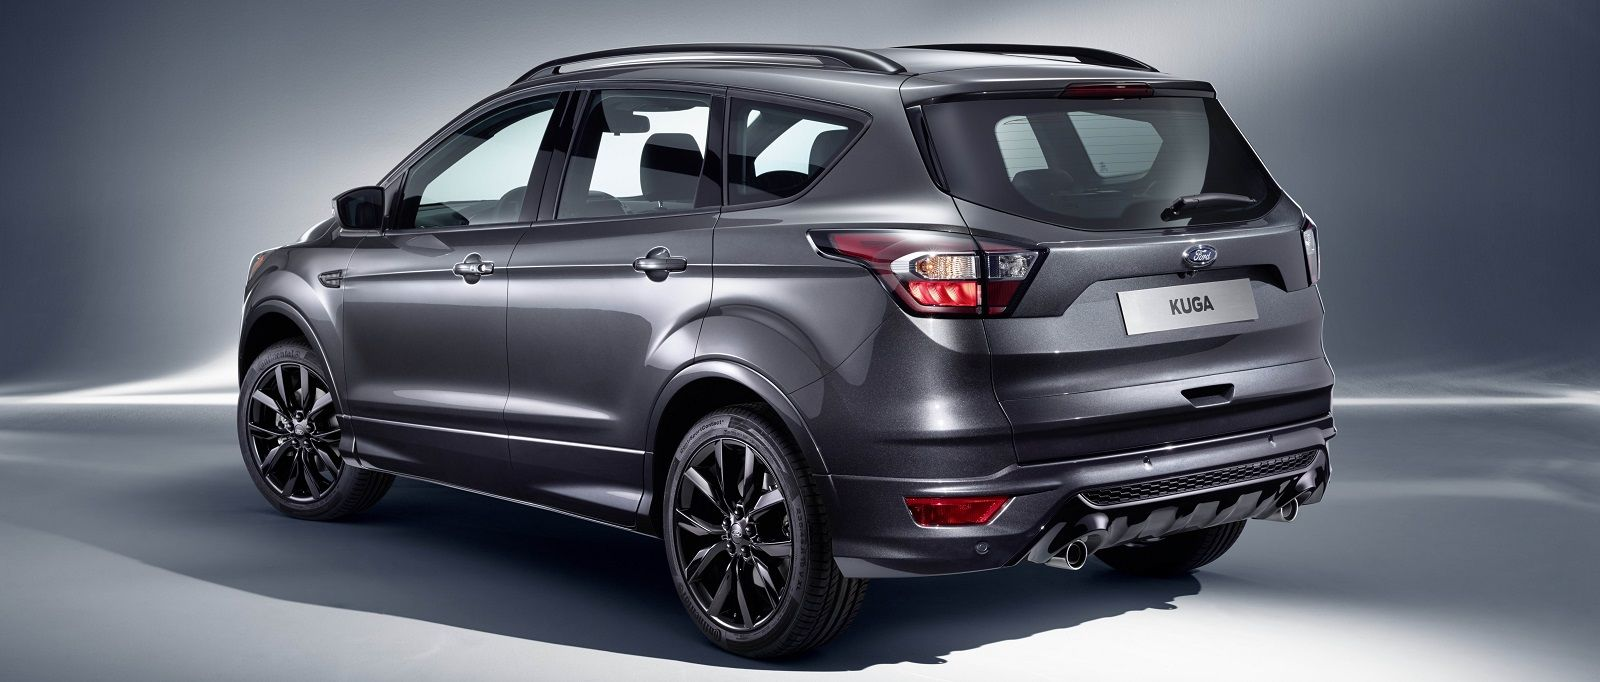 ford kuga 2012 essai video. Black Bedroom Furniture Sets. Home Design Ideas